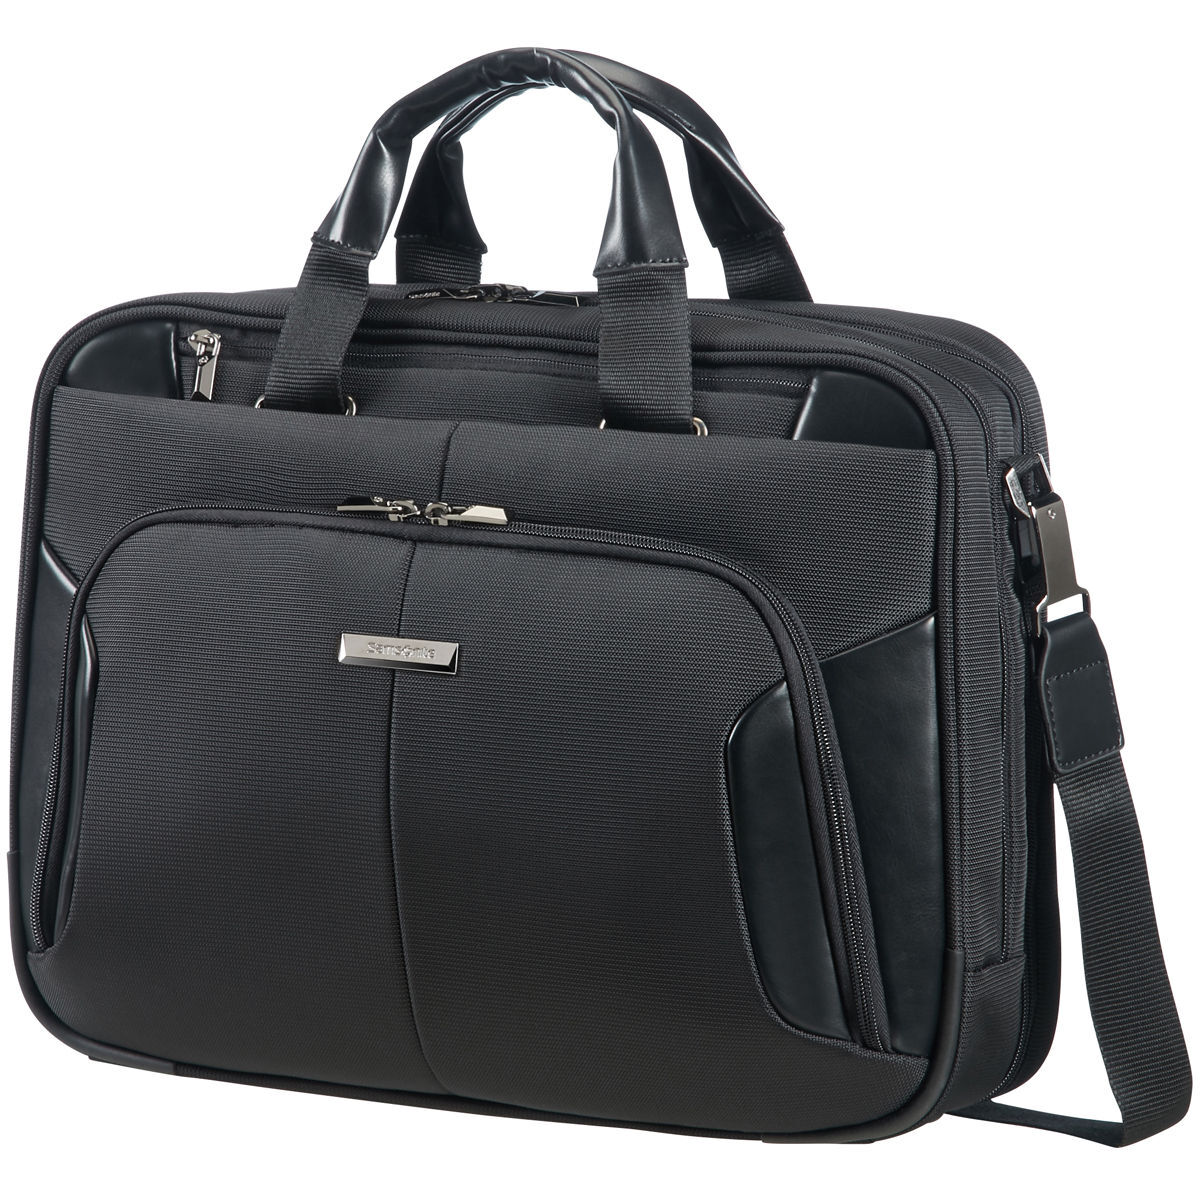 samsonite bailhandle laptoptasche 15 6 zoll karstadt. Black Bedroom Furniture Sets. Home Design Ideas